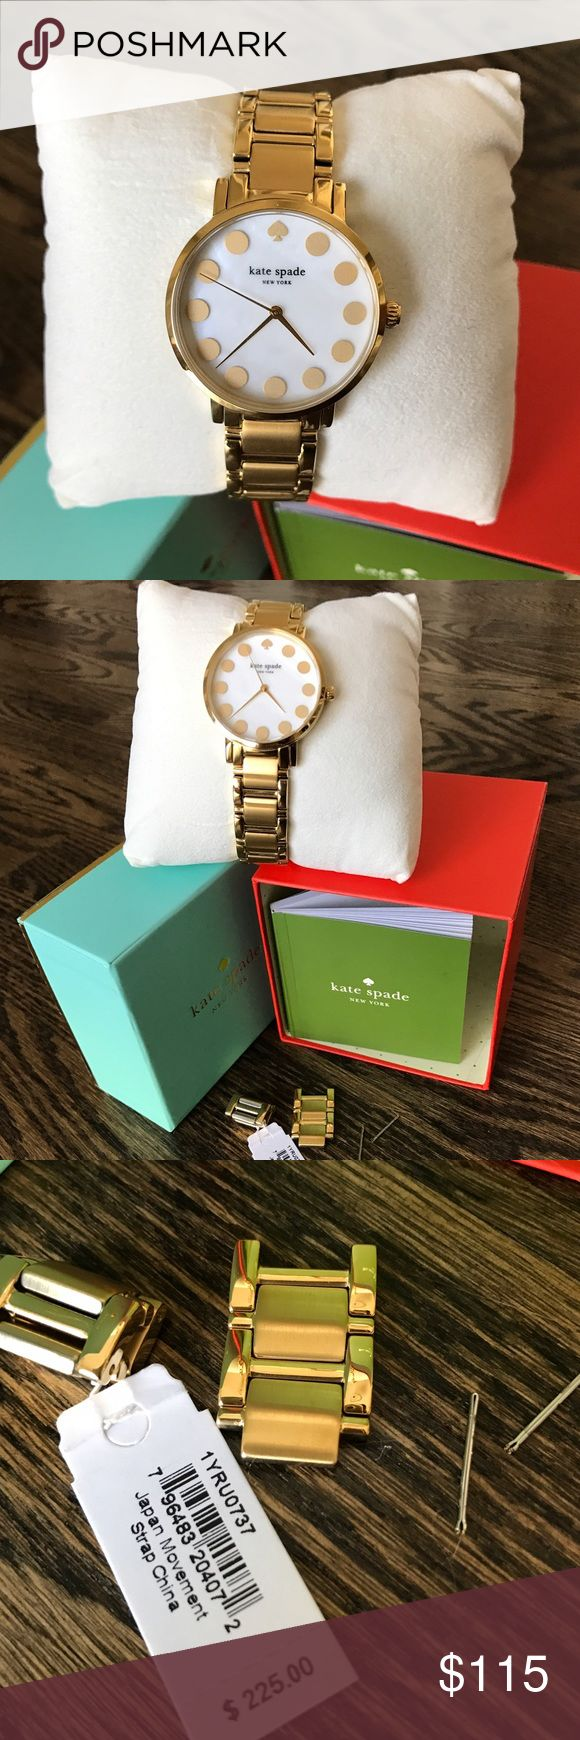 Kate Spade gold watch Brand new never worn Kate spade gold watch with mother of pearl face! Some links were removed but they will all be included along with guide and original box! I ended up getting one like this as a gift so I'm selling the one I purchased! (Battery works!) kate spade Accessories Watches